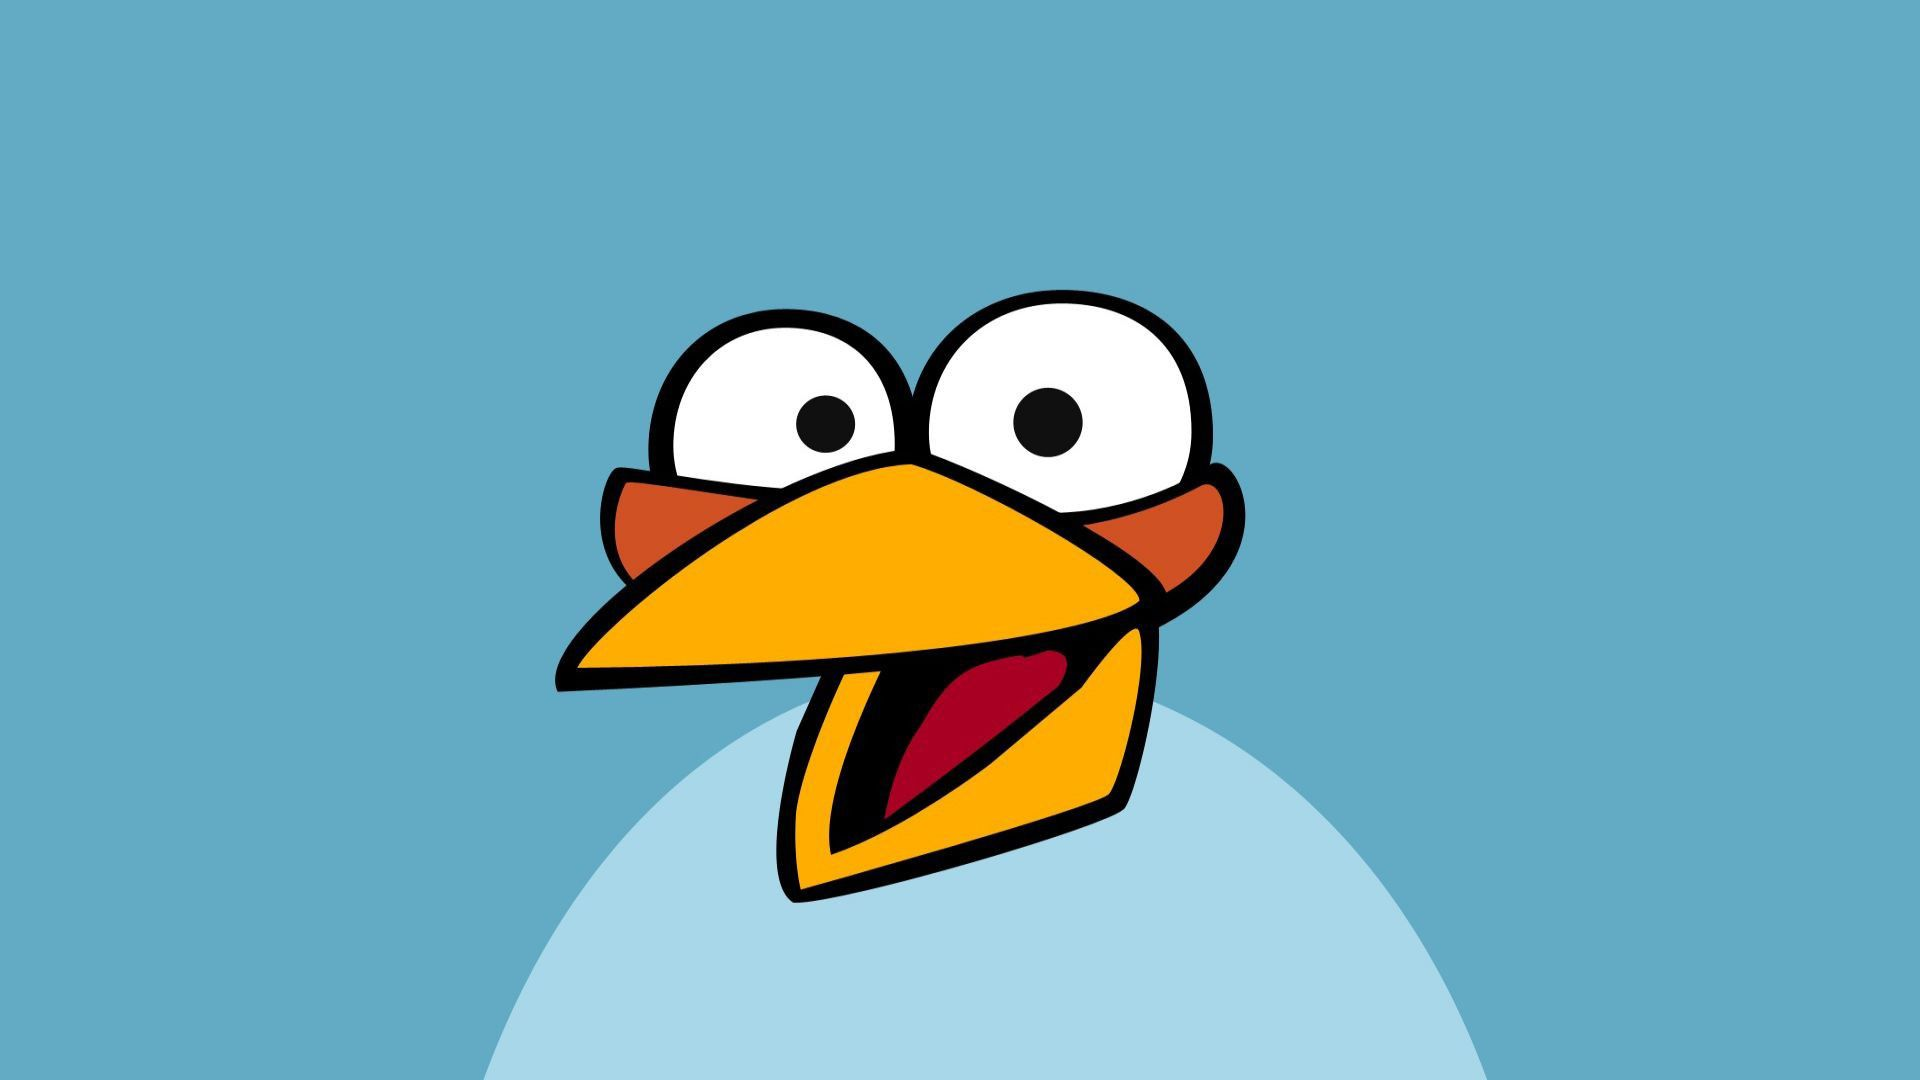 Blue Birds From Angry Birds